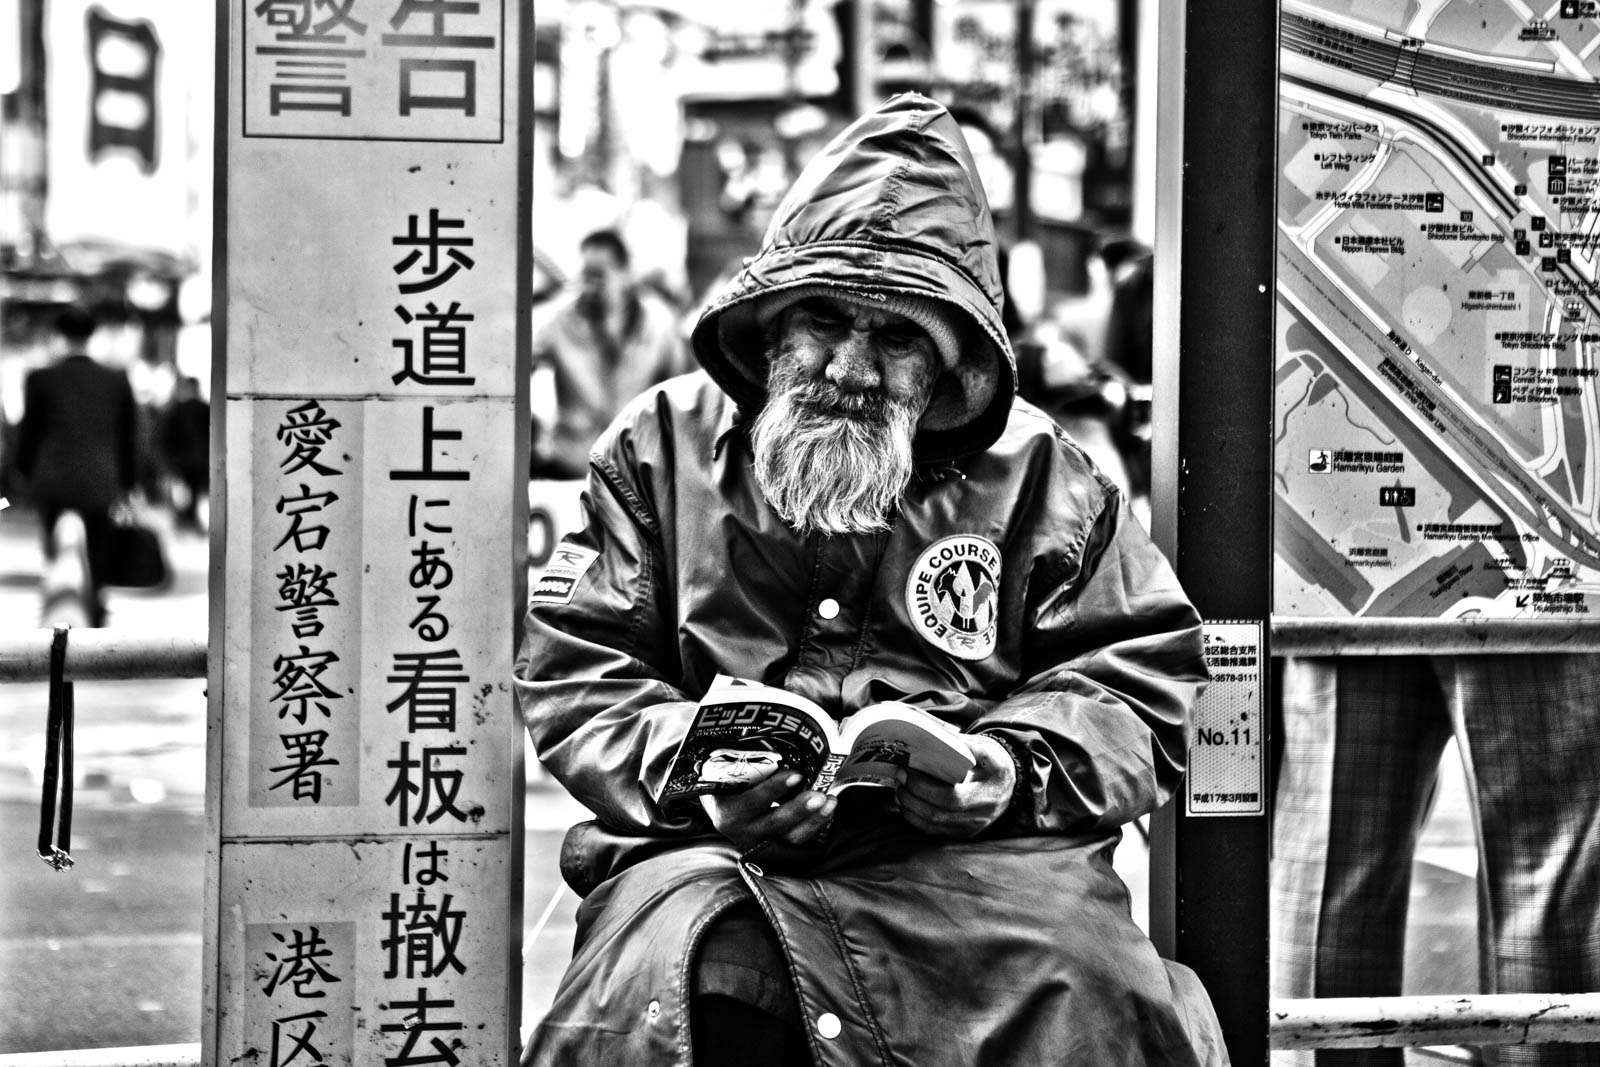 Japanese Homeless at Shimbashi station reading a manga in winter. Street Photography by Victor Borst